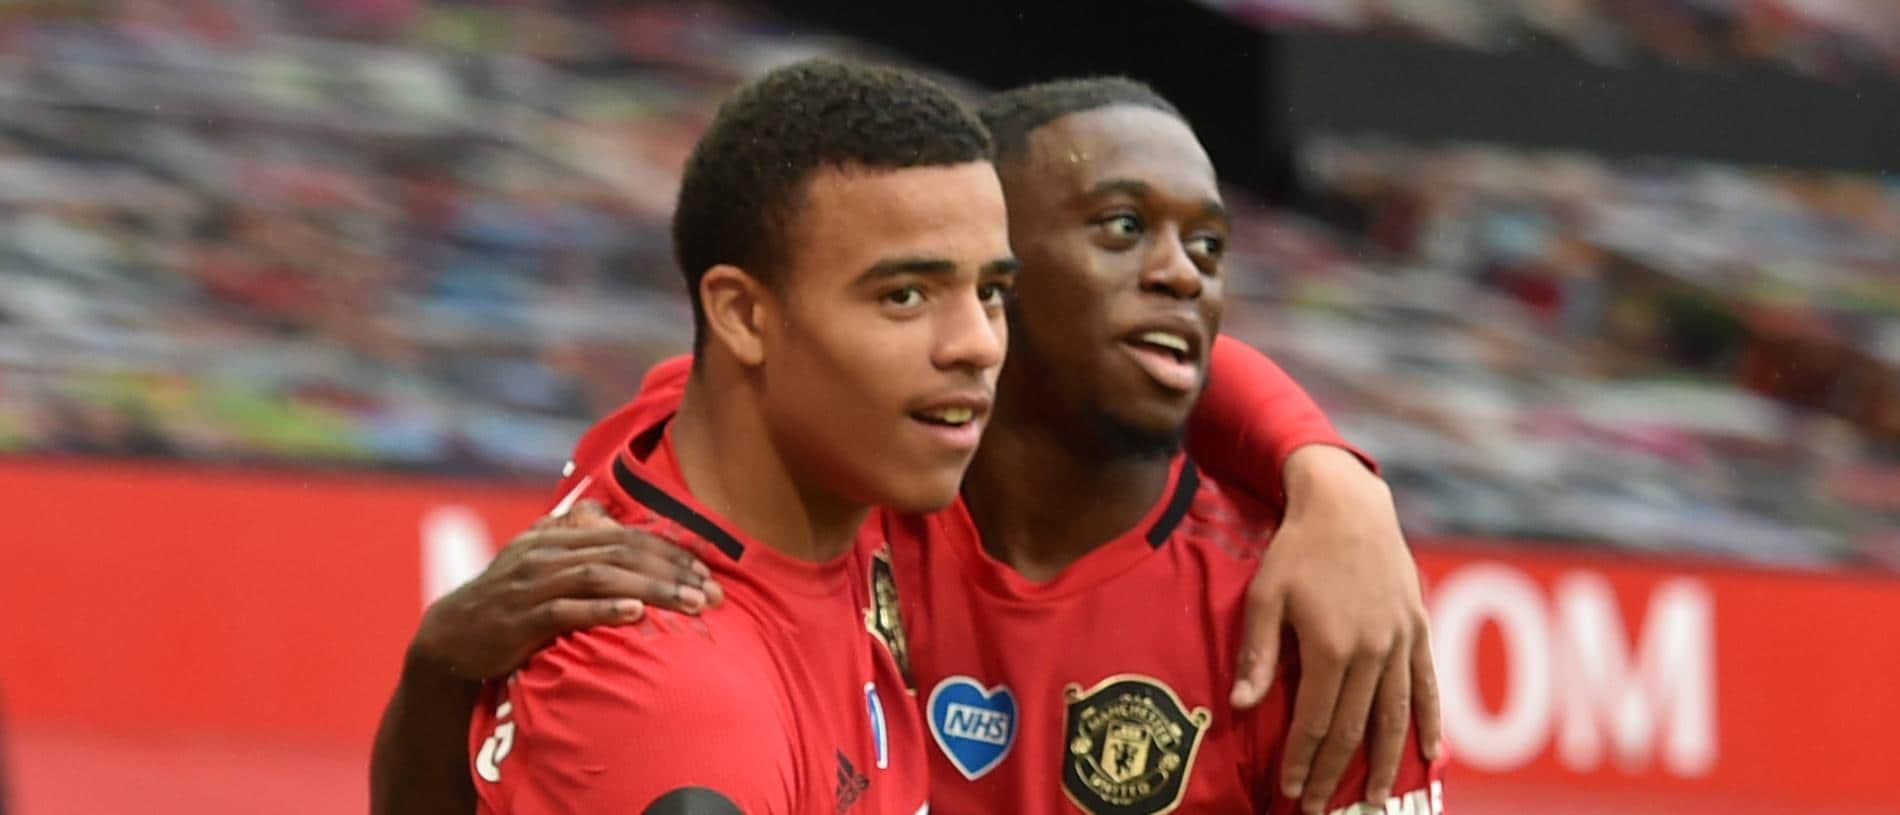 Manchester United's English striker Mason Greenwood (L) celebrates with Manchester United's English defender Aaron Wan-Bissaka after scoring a goal during the English Premier League football match between Manchester United and Bournemouth at Old Trafford in Manchester, north west England, on July 4, 2020. (Photo by PETER POWELL / POOL / AFP) / RESTRICTED TO EDITORIAL USE. No use with unauthorized audio, video, data, fixture lists, club/league logos or 'live' services. Online in-match use limited to 120 images. An additional 40 images may be used in extra time. No video emulation. Social media in-match use limited to 120 images. An additional 40 images may be used in extra time. No use in betting publications, games or single club/league/player publications. /